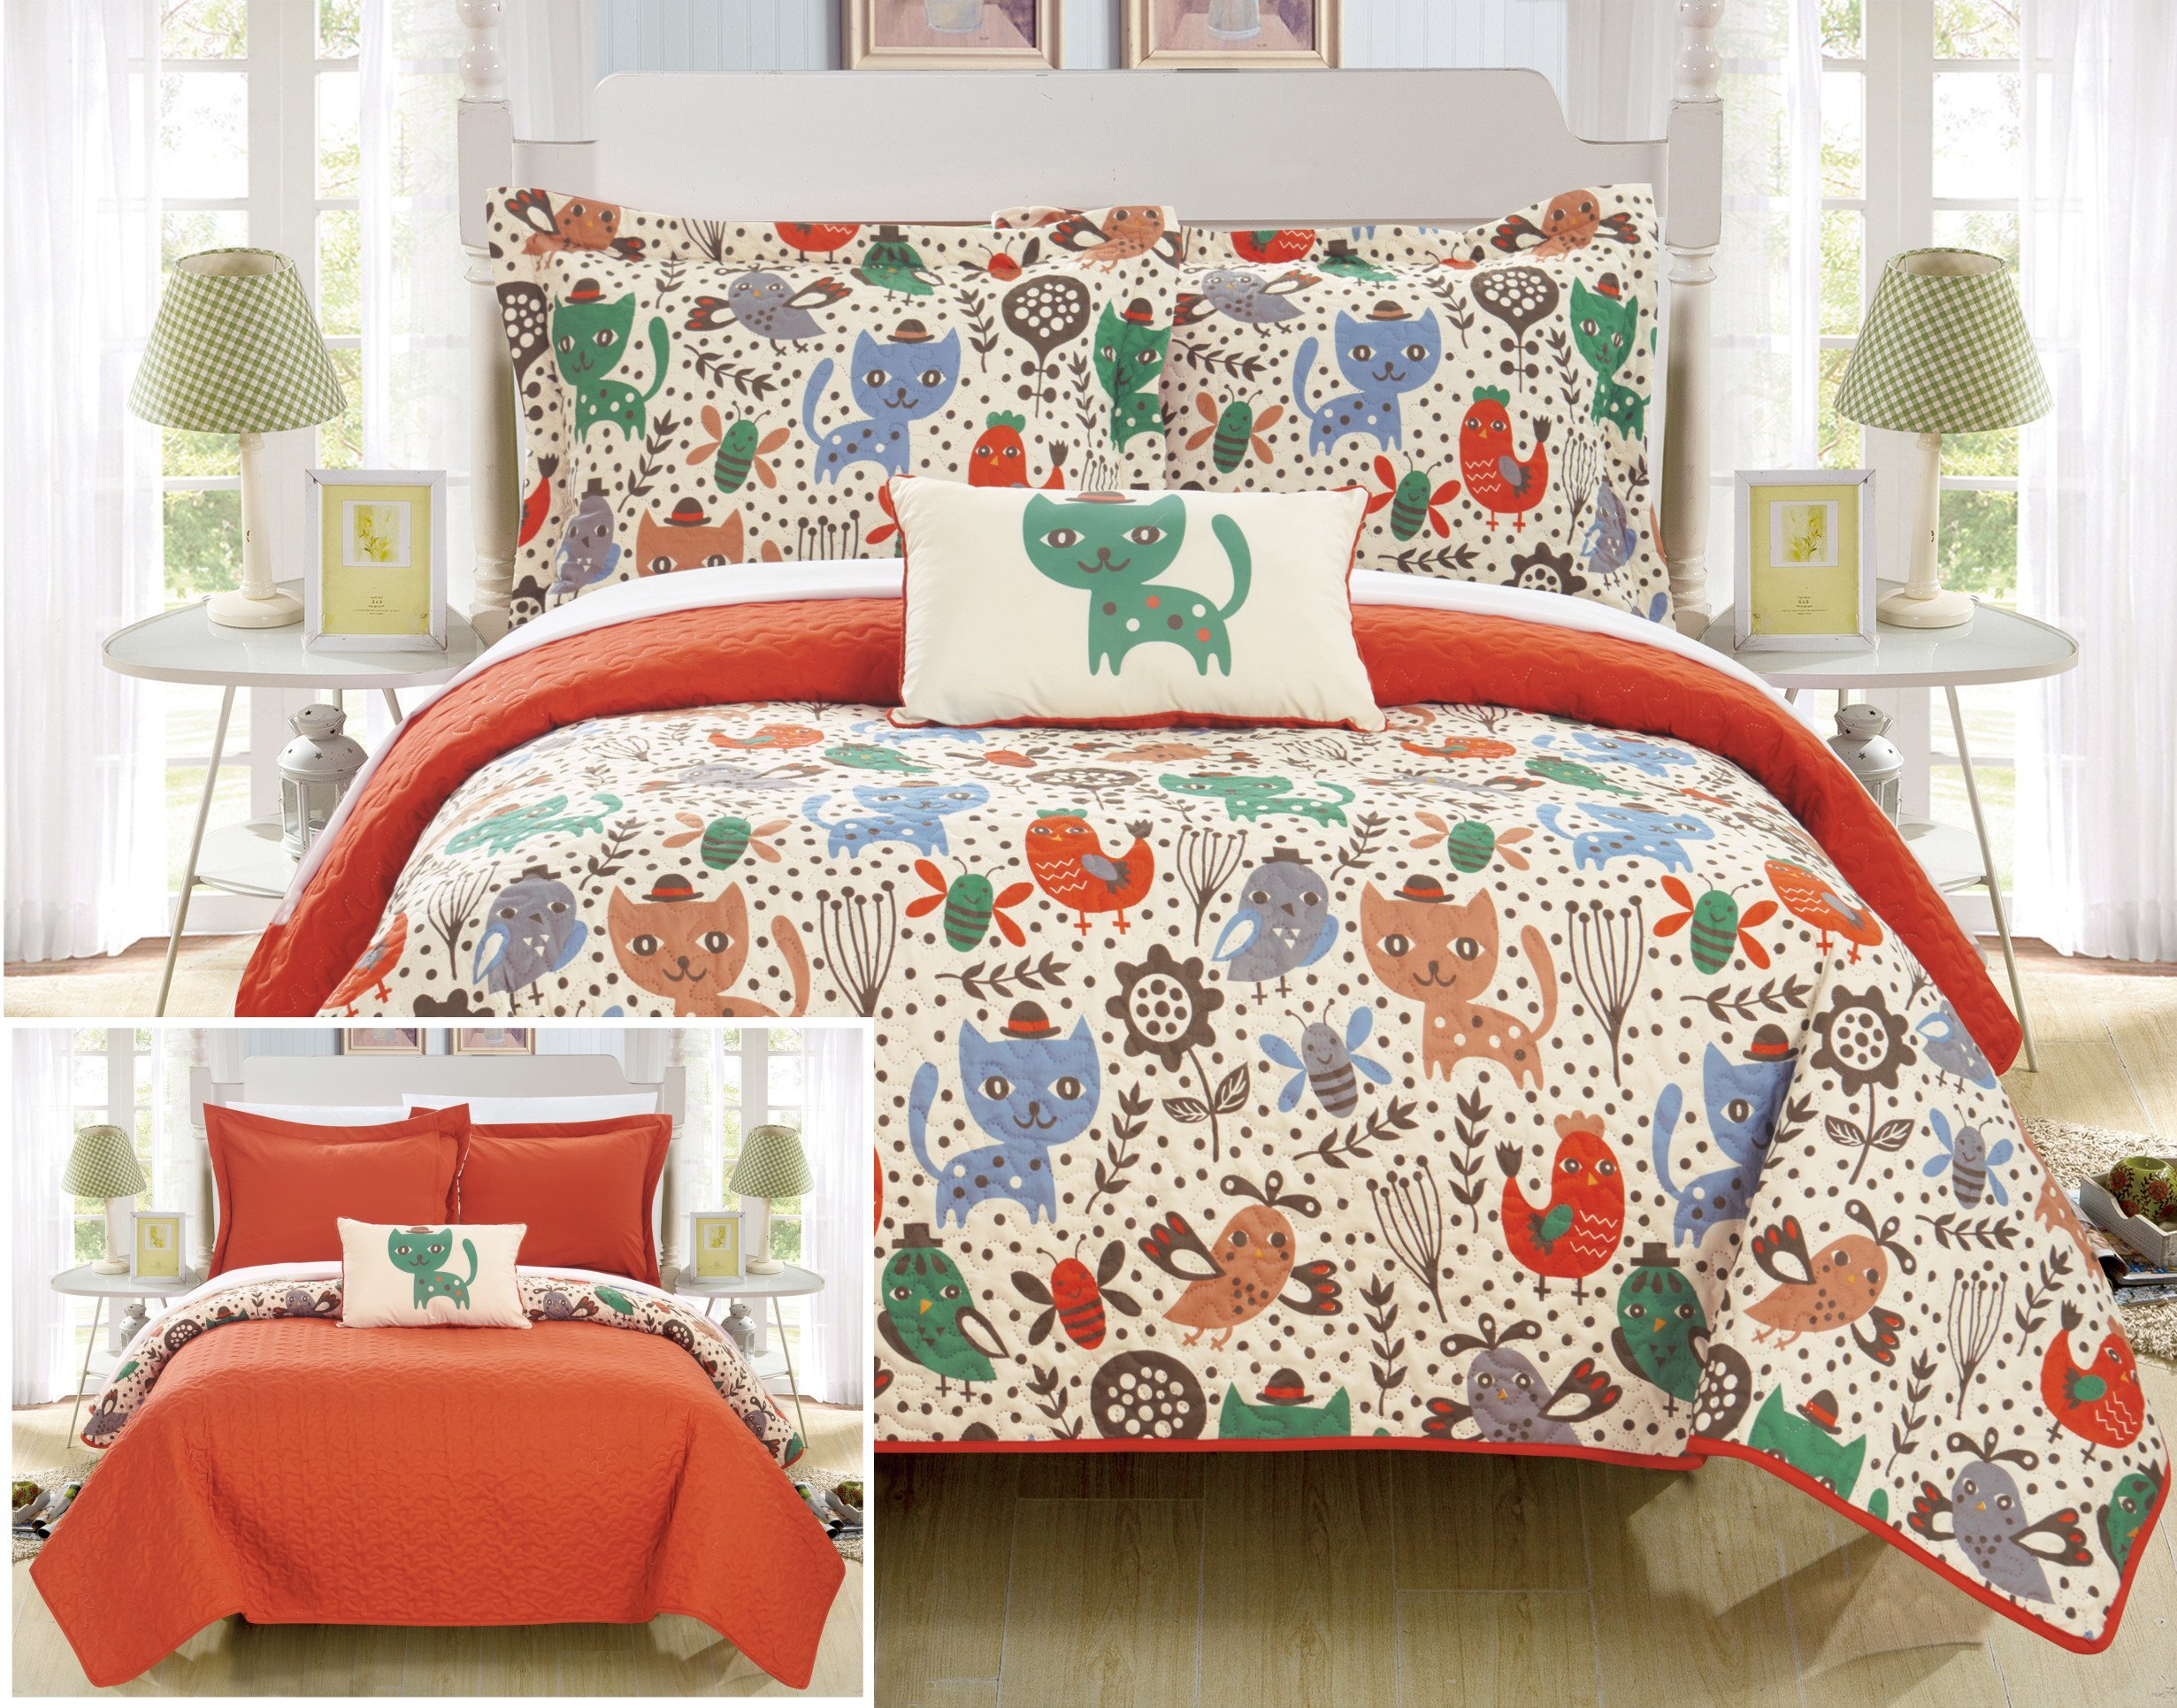 Chic Home Trixie 3 Piece Reversible Quilt Set Cute Animal Friends Youth Design Coverlet Bedding-Decorative Pillow Sham Included/XL Size, Twin, Orange